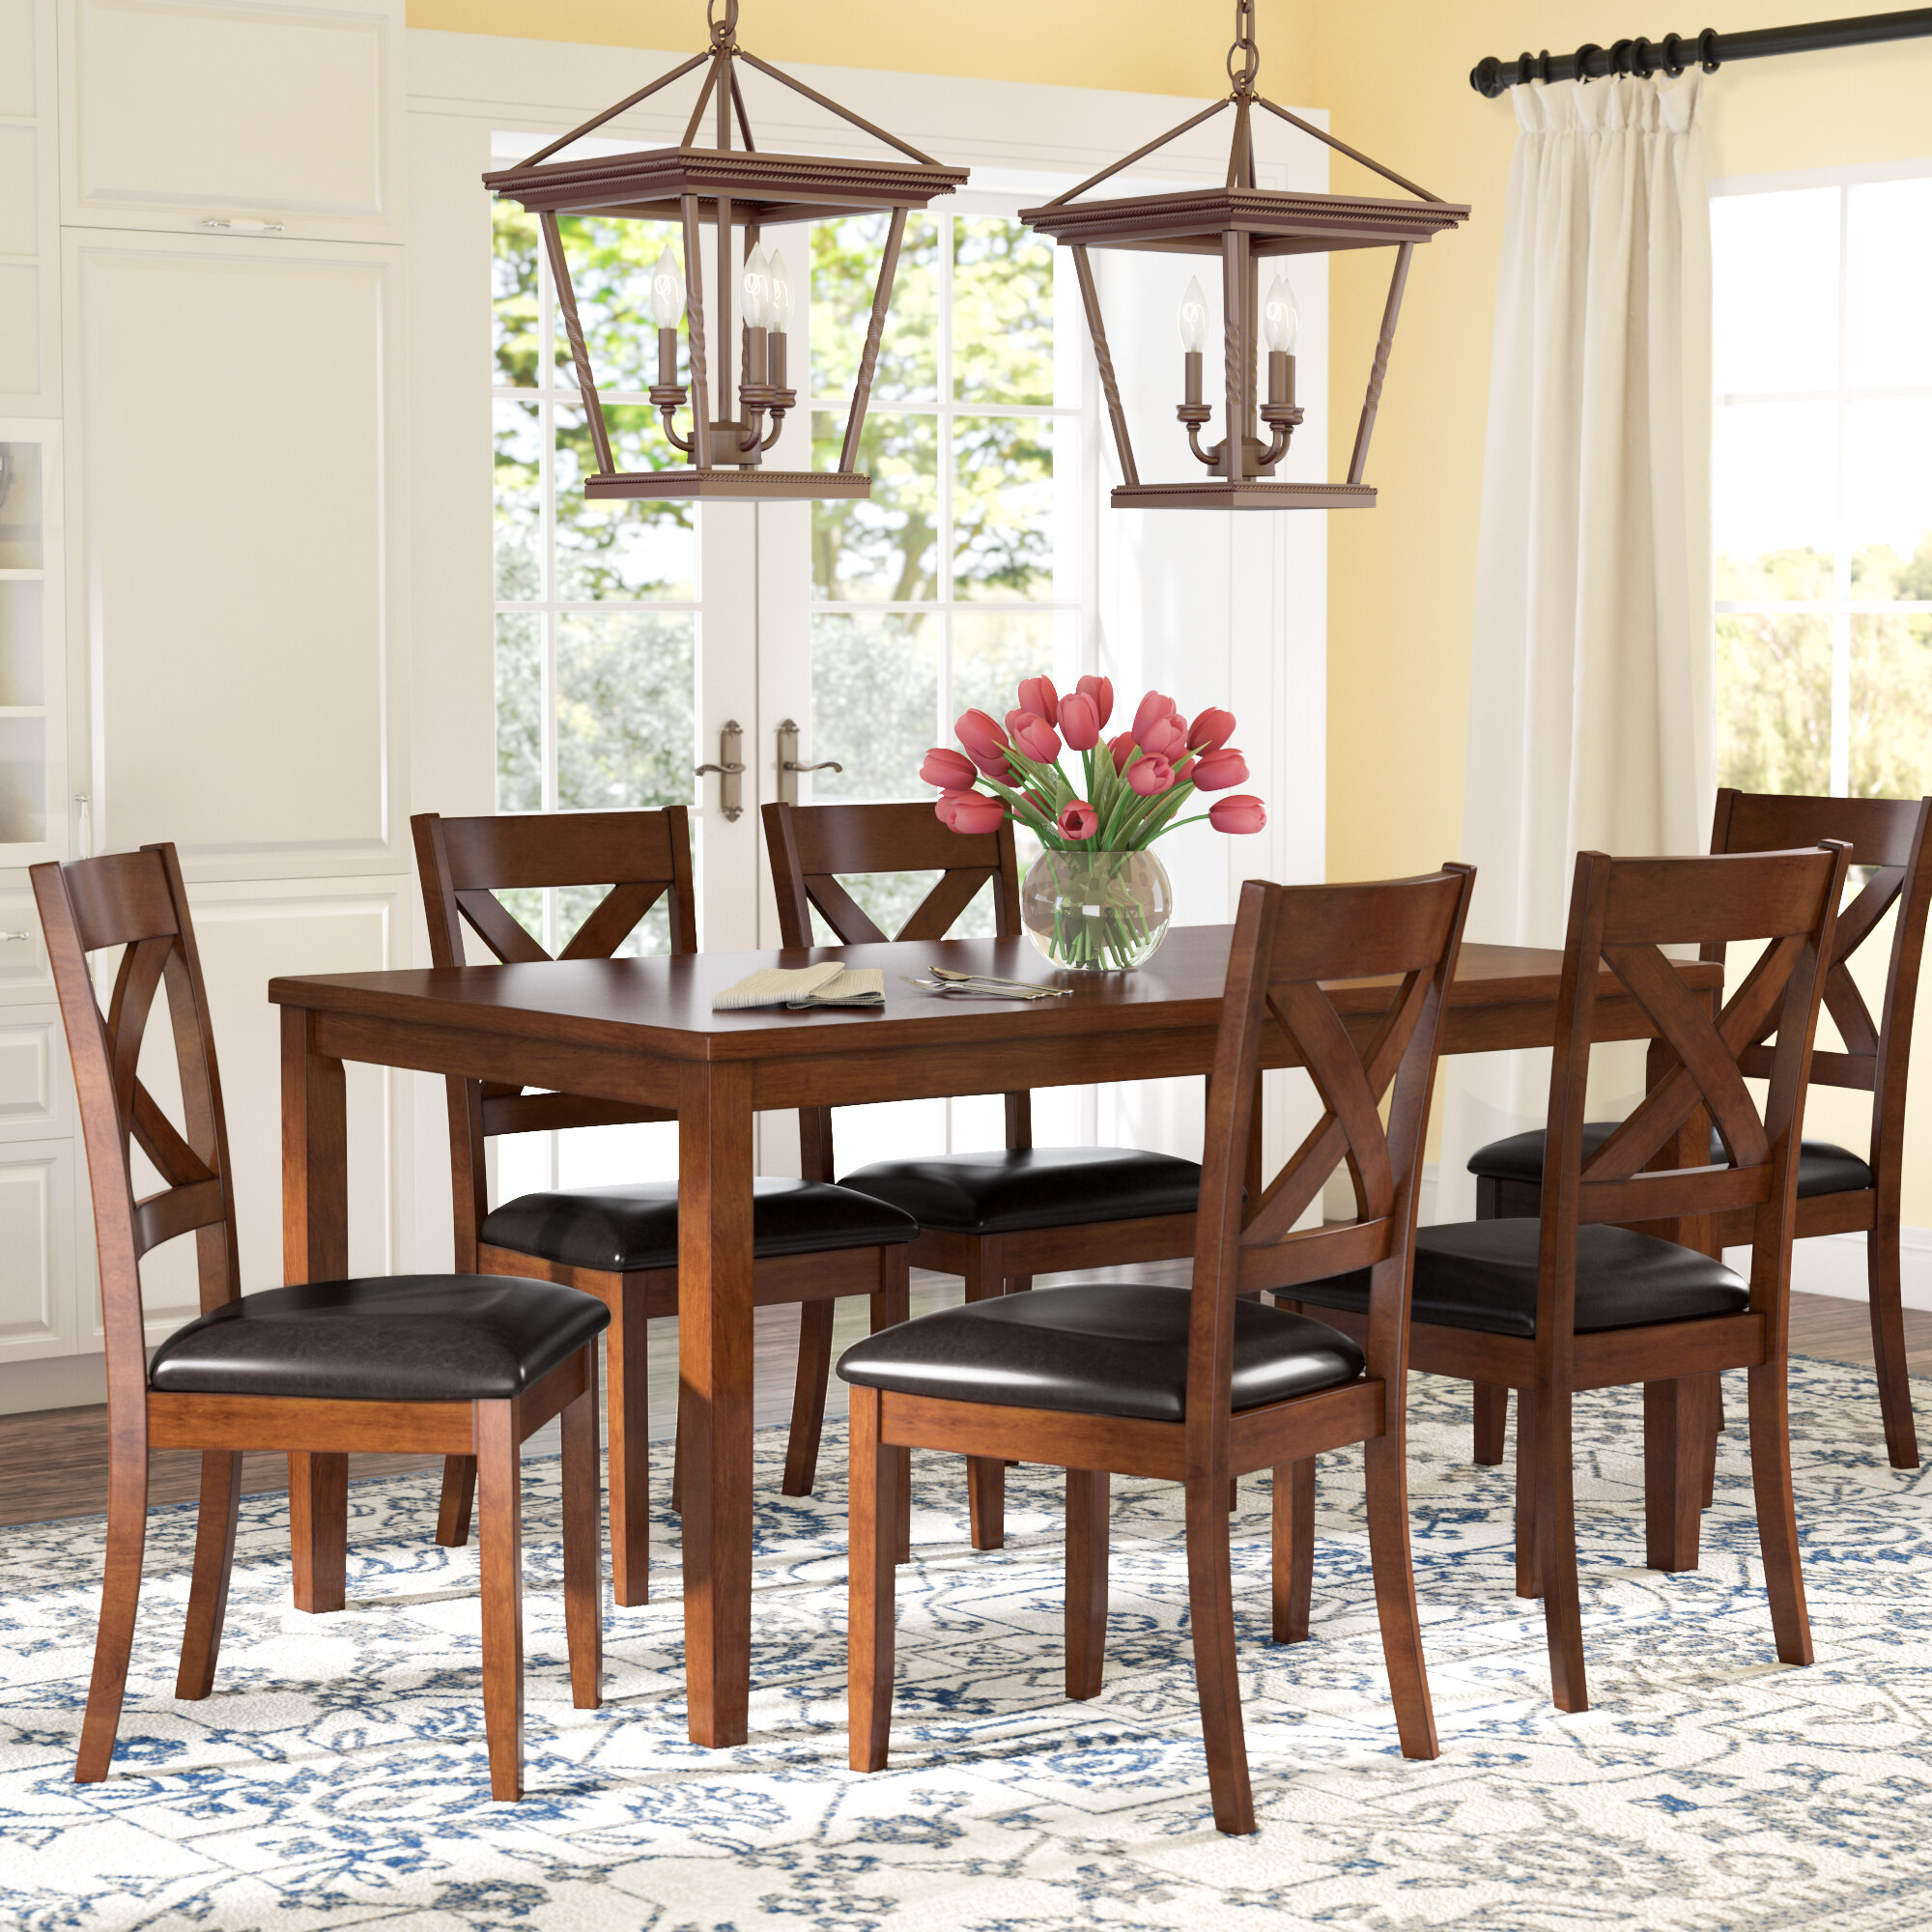 Darby Home Co Nadine 7 Piece Breakfast Nook Dining Set Reviews